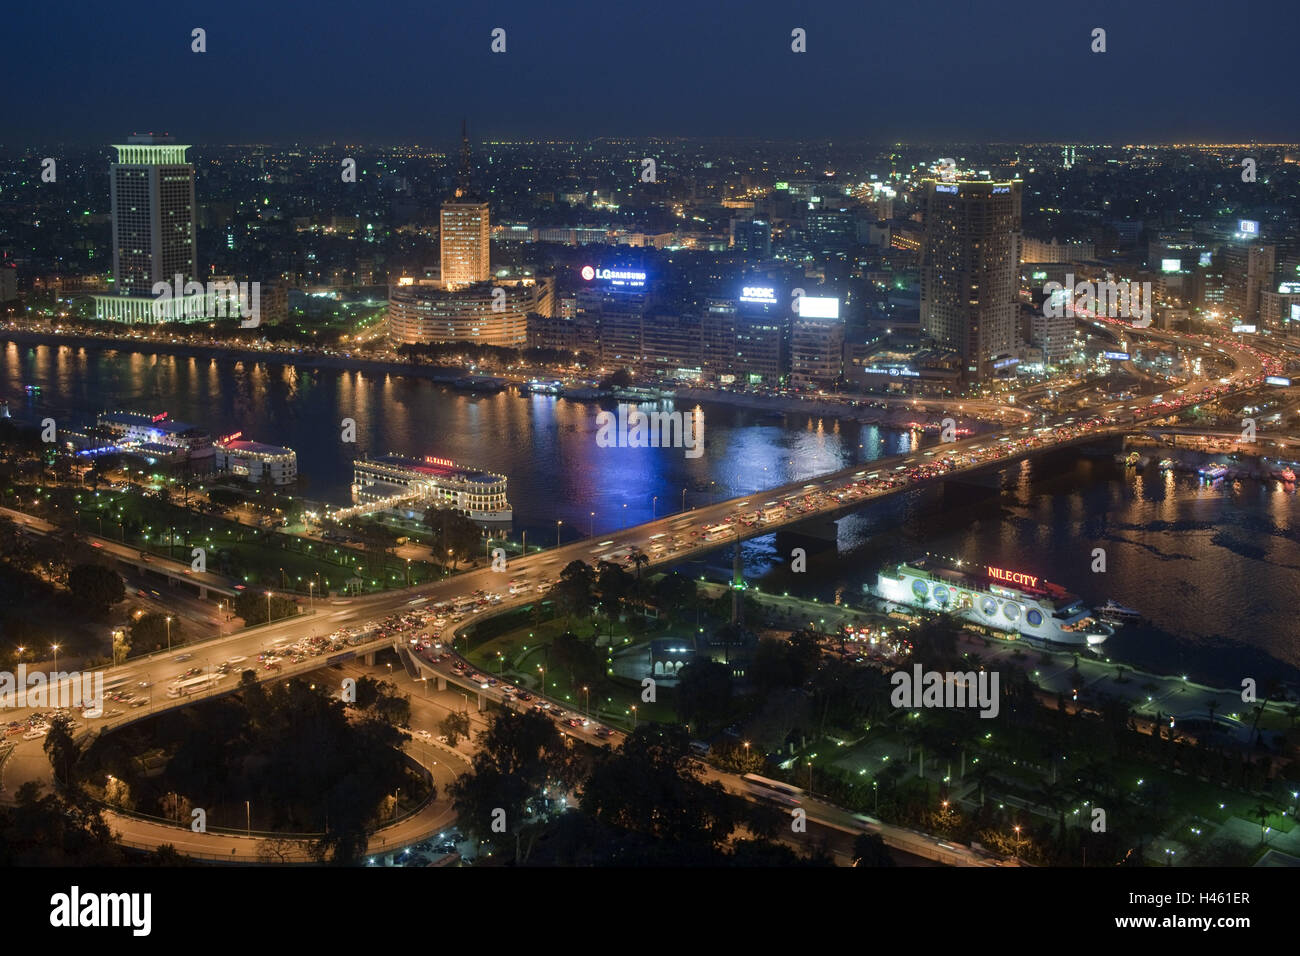 Egypt Cairo 6th October Bridge View From The Tower On Building State Television